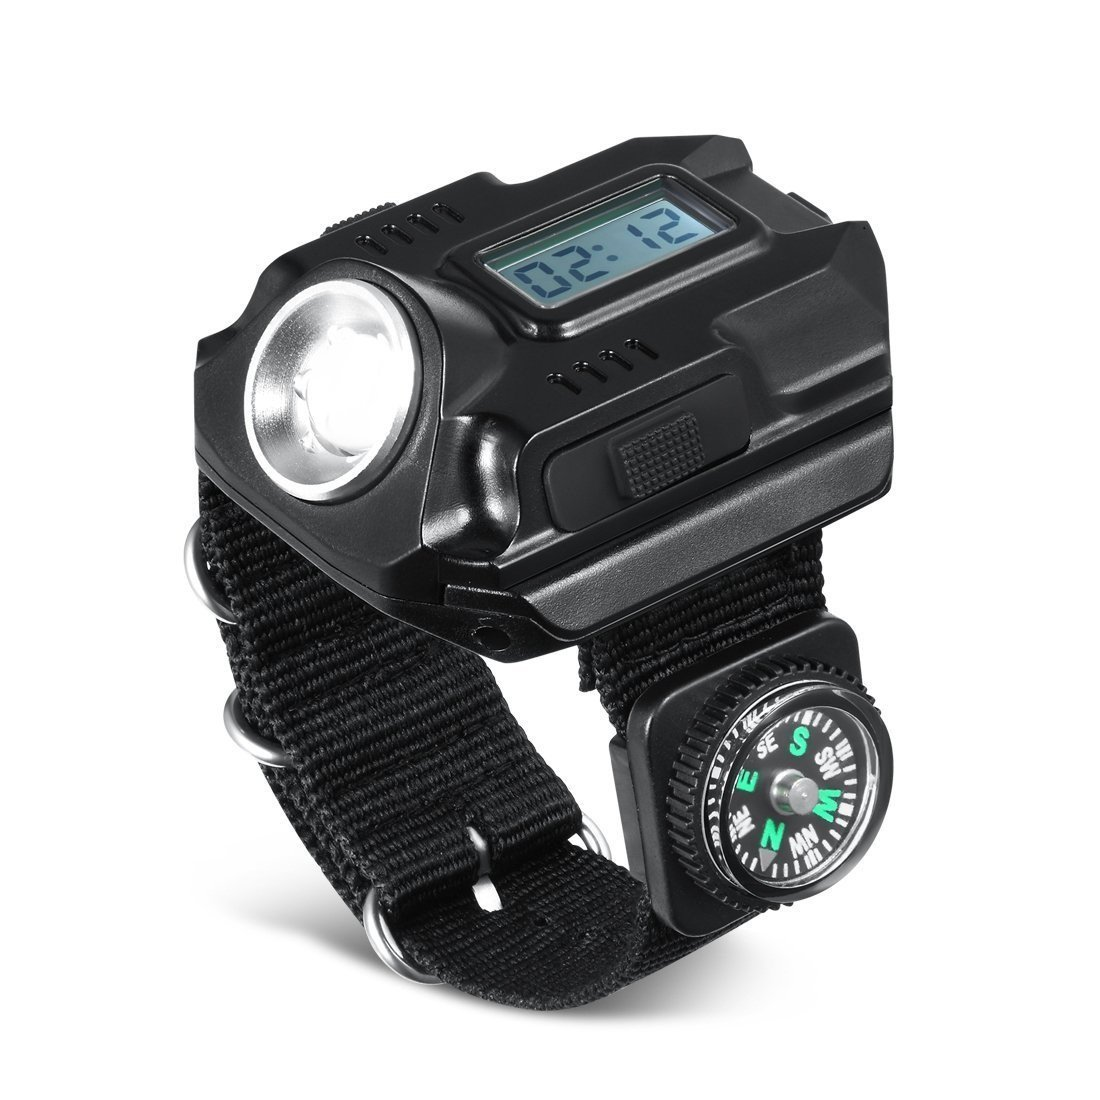 SUNDERPOWER Wrist LED Light, Rechargeable Waterproof LED Flashlight Watch with Compass, Best for Running Mountain Climbing Camping Survival Hiking Hunting Patrol